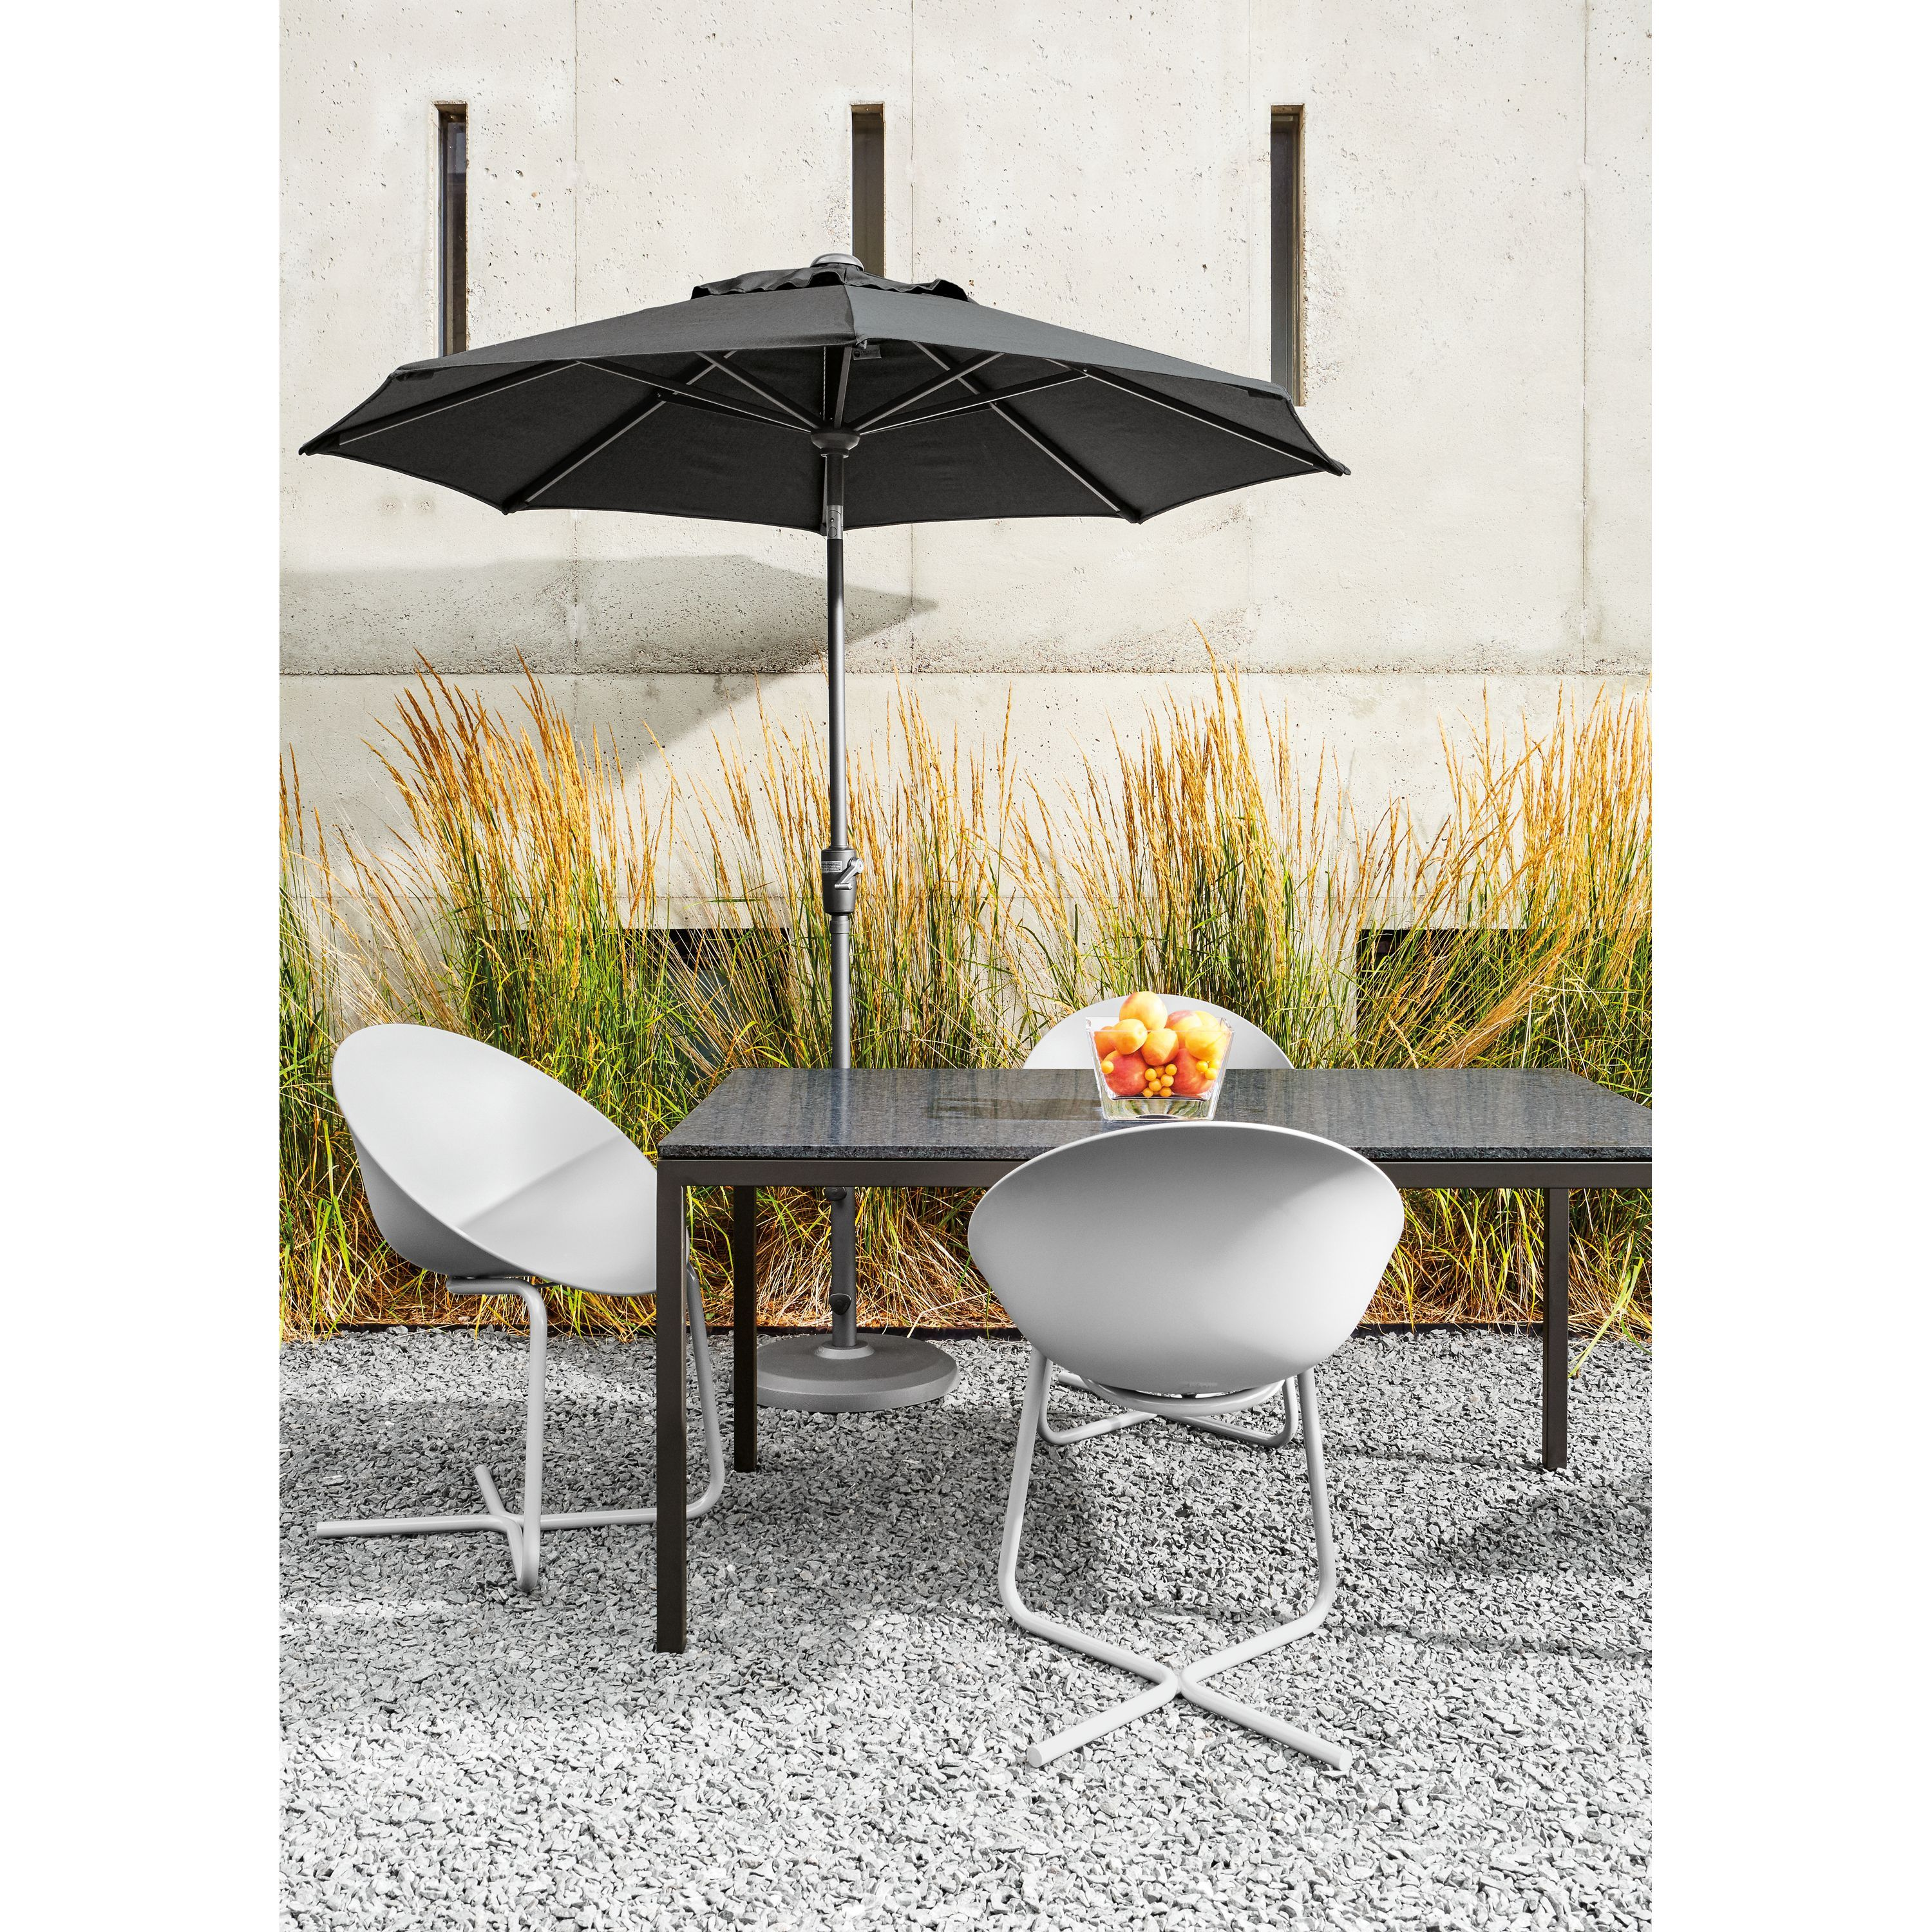 Brilliant Maui 6 And 7 5 Patio Umbrellas In Sunbrella Canvas Best Image Libraries Weasiibadanjobscom